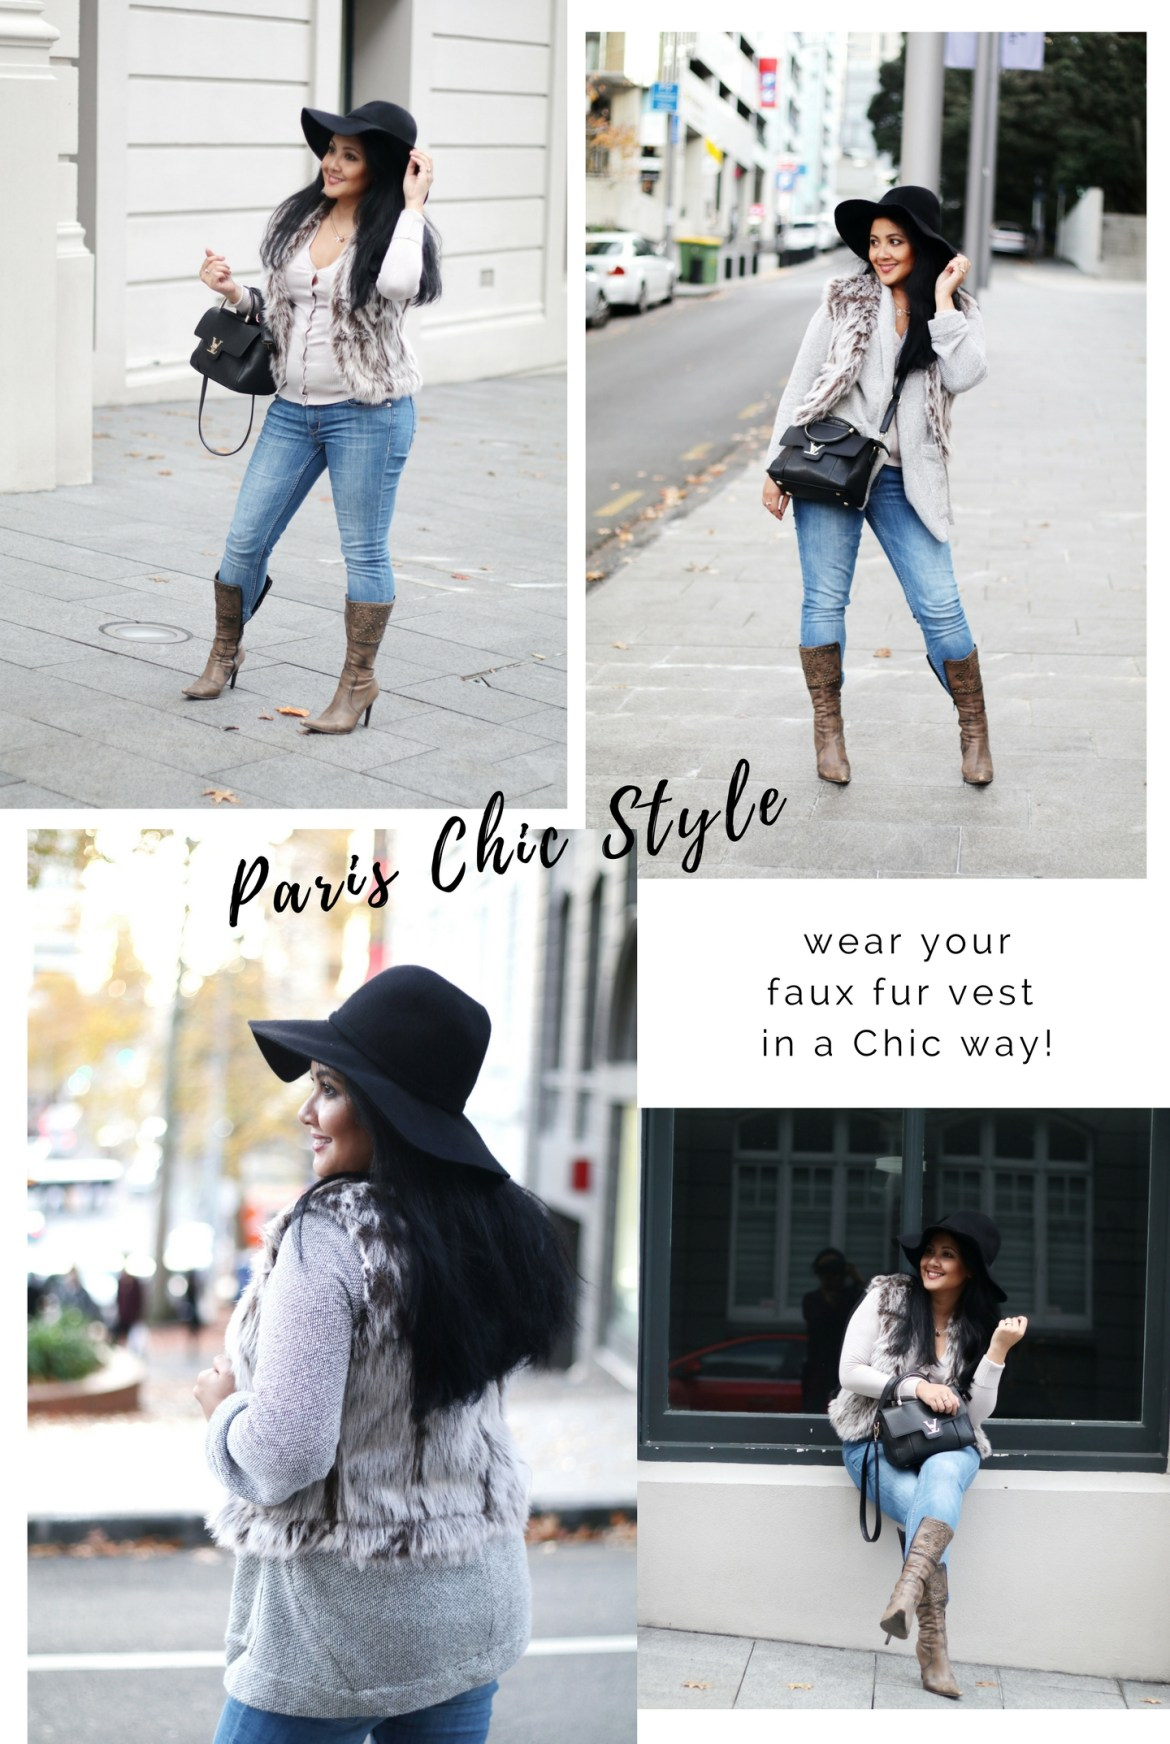 Paris Chic Style How To Wear A Faux Fur Vest Parisian Chic Style Everyday Fashion 1 (1)